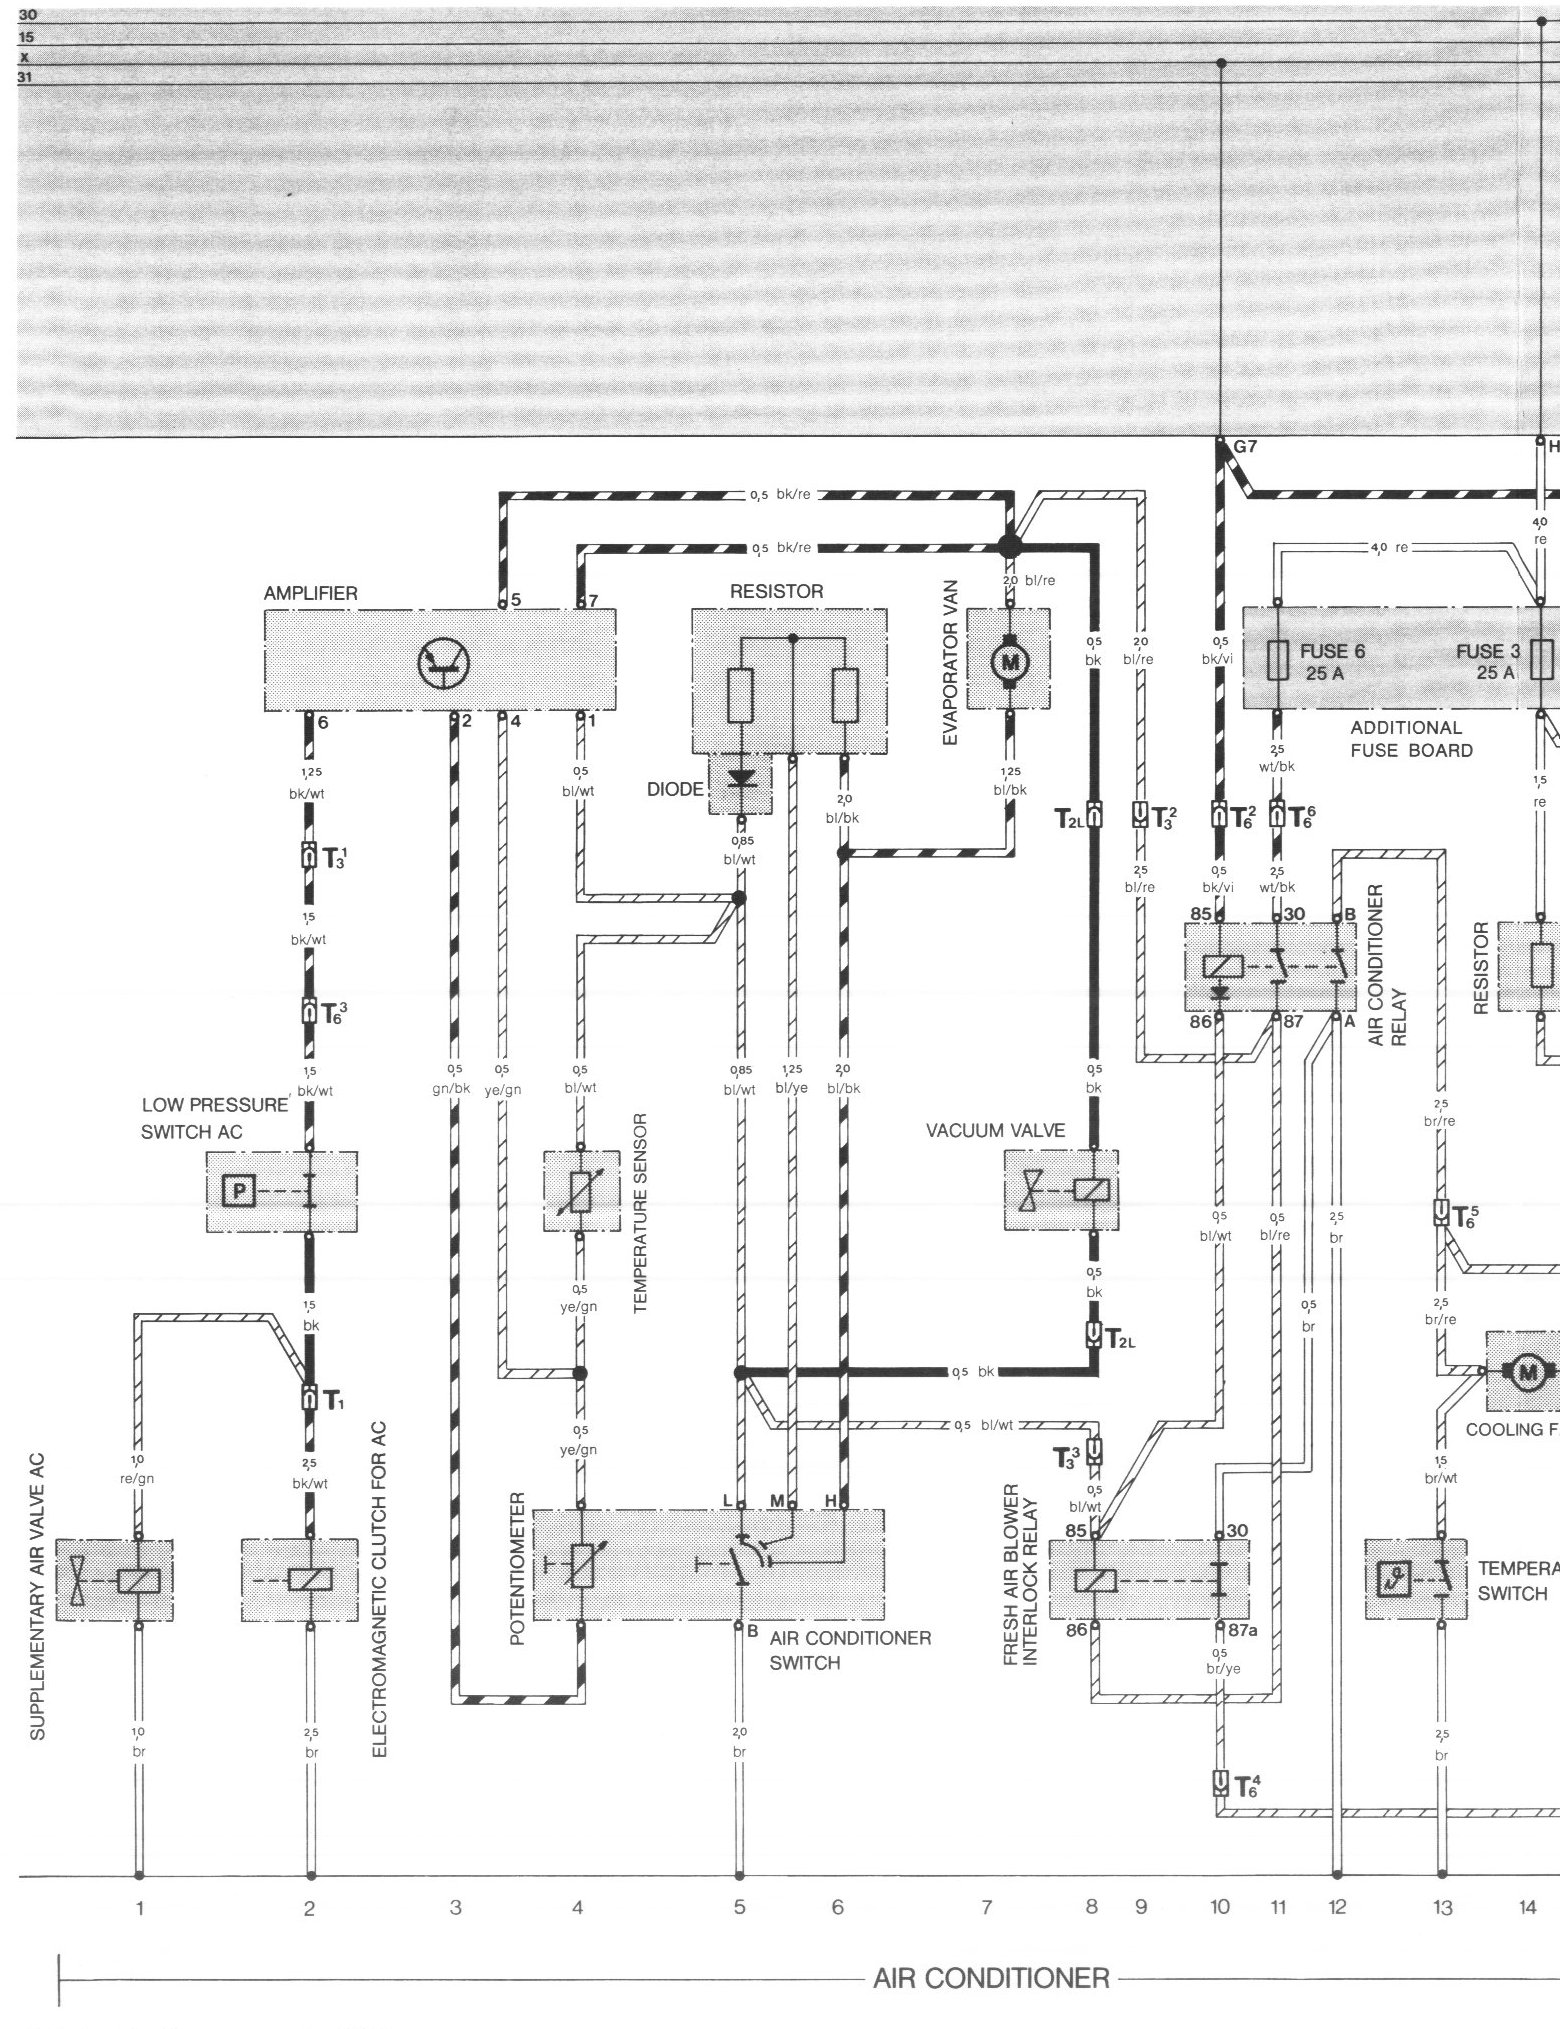 944_84_AC_1 porsche 944 wiring diagram pdf 1989 porshce 930 engine wiring 1987 porsche 944 fuse box diagram at n-0.co